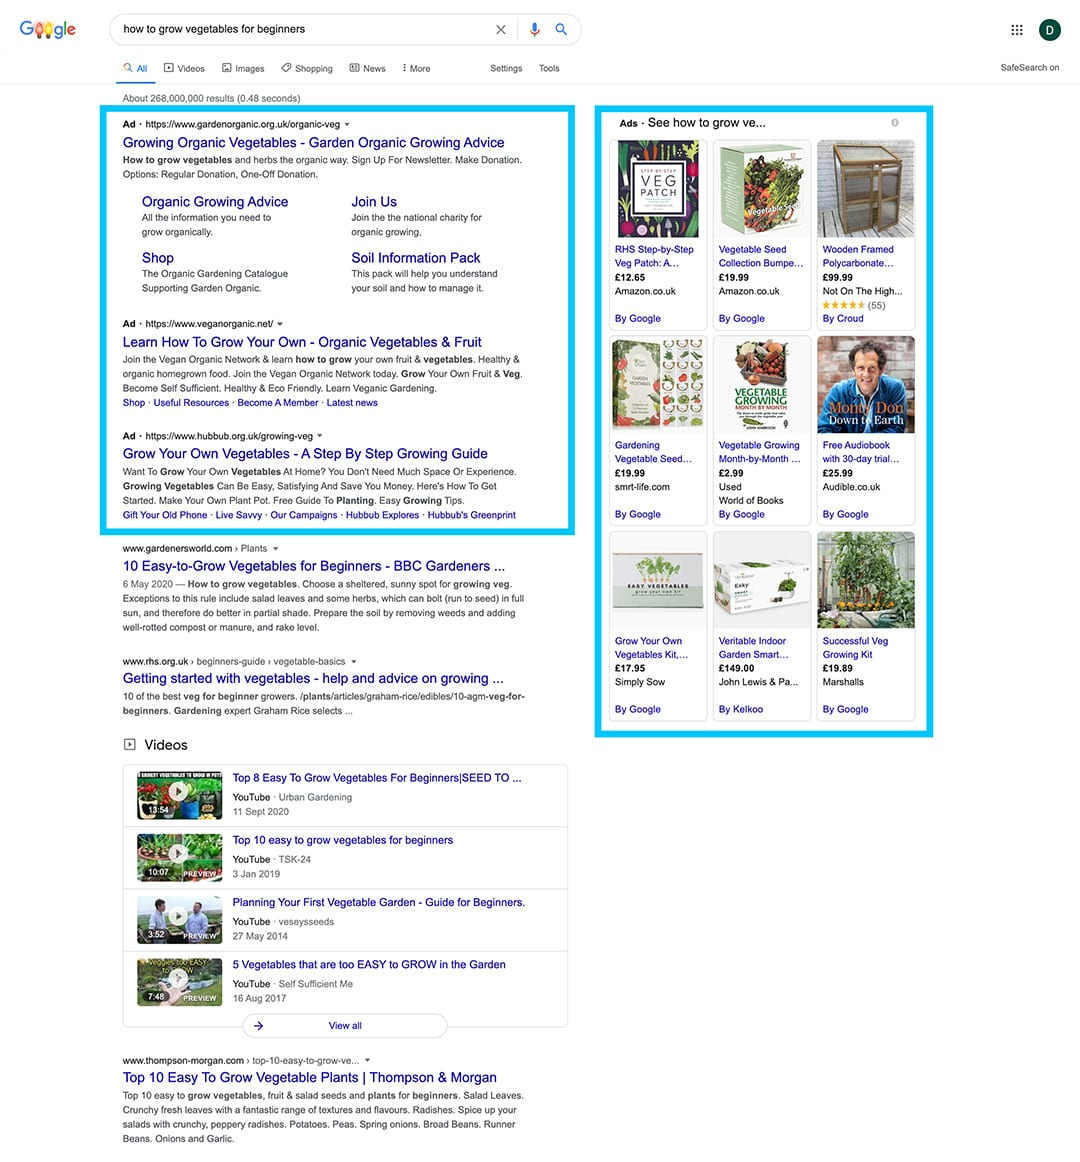 search engine marketing ppc google ads results